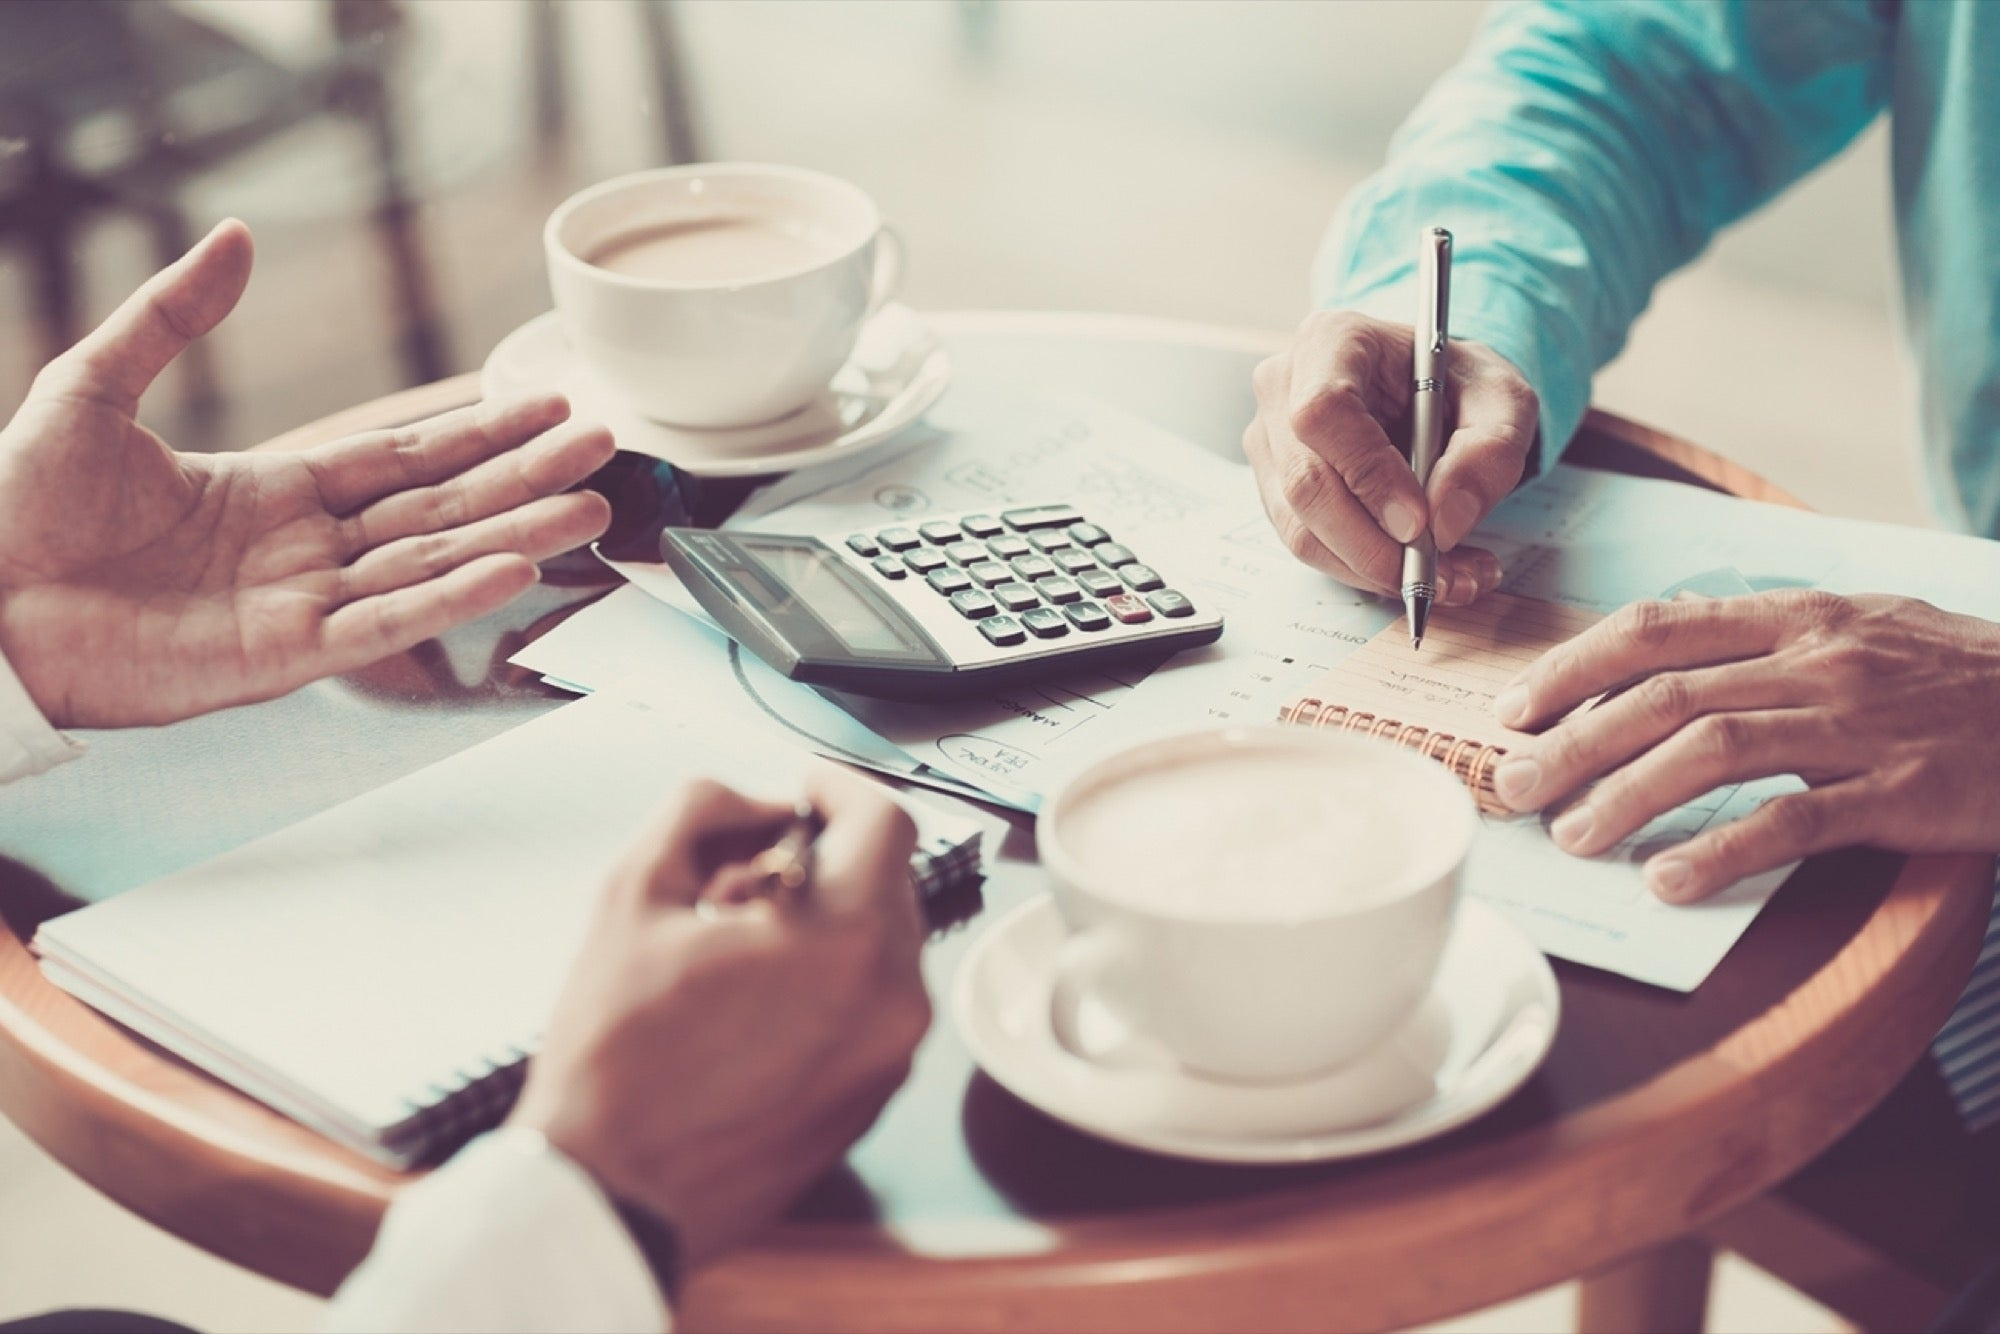 Just Who Exactly Is Best Qualified To Value Your Business